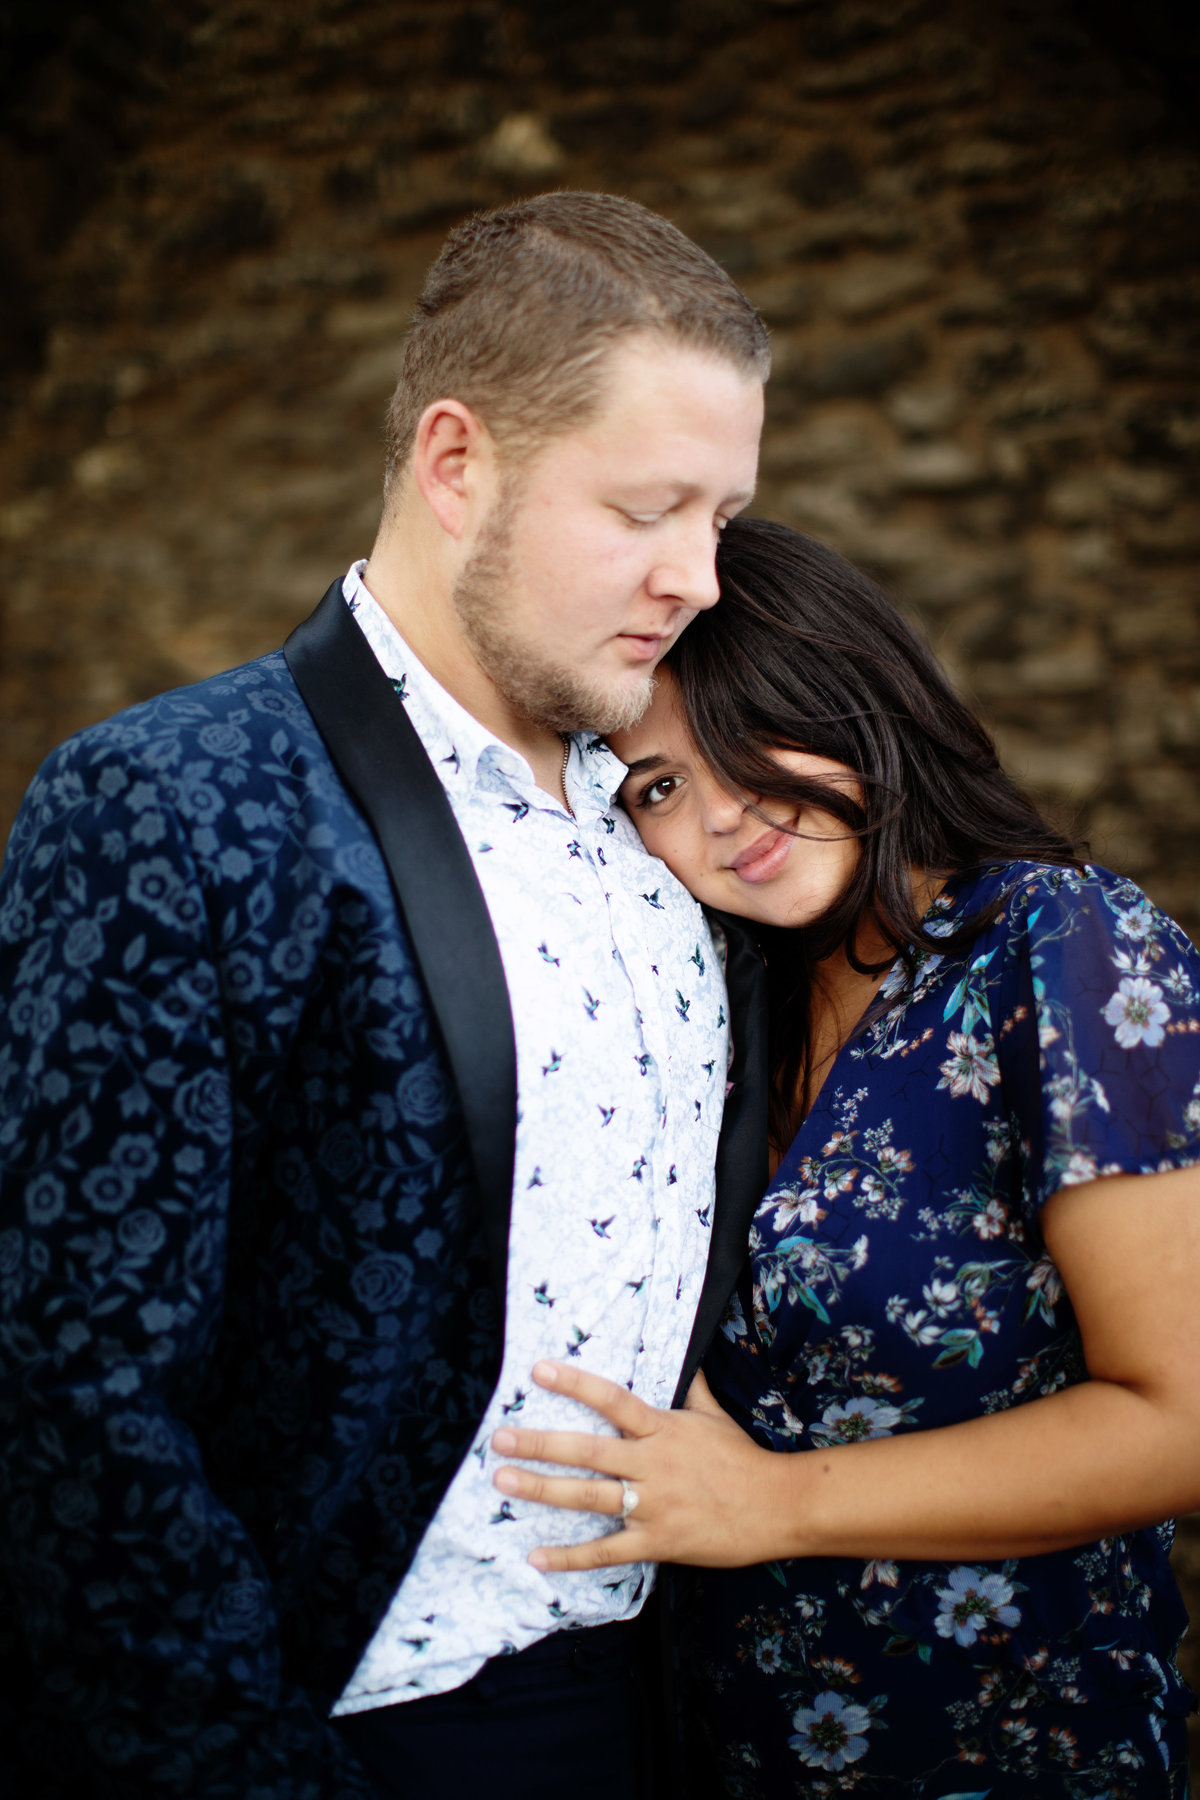 BEVIN+ALEX-ENGAGEMENT PHOTOS-006